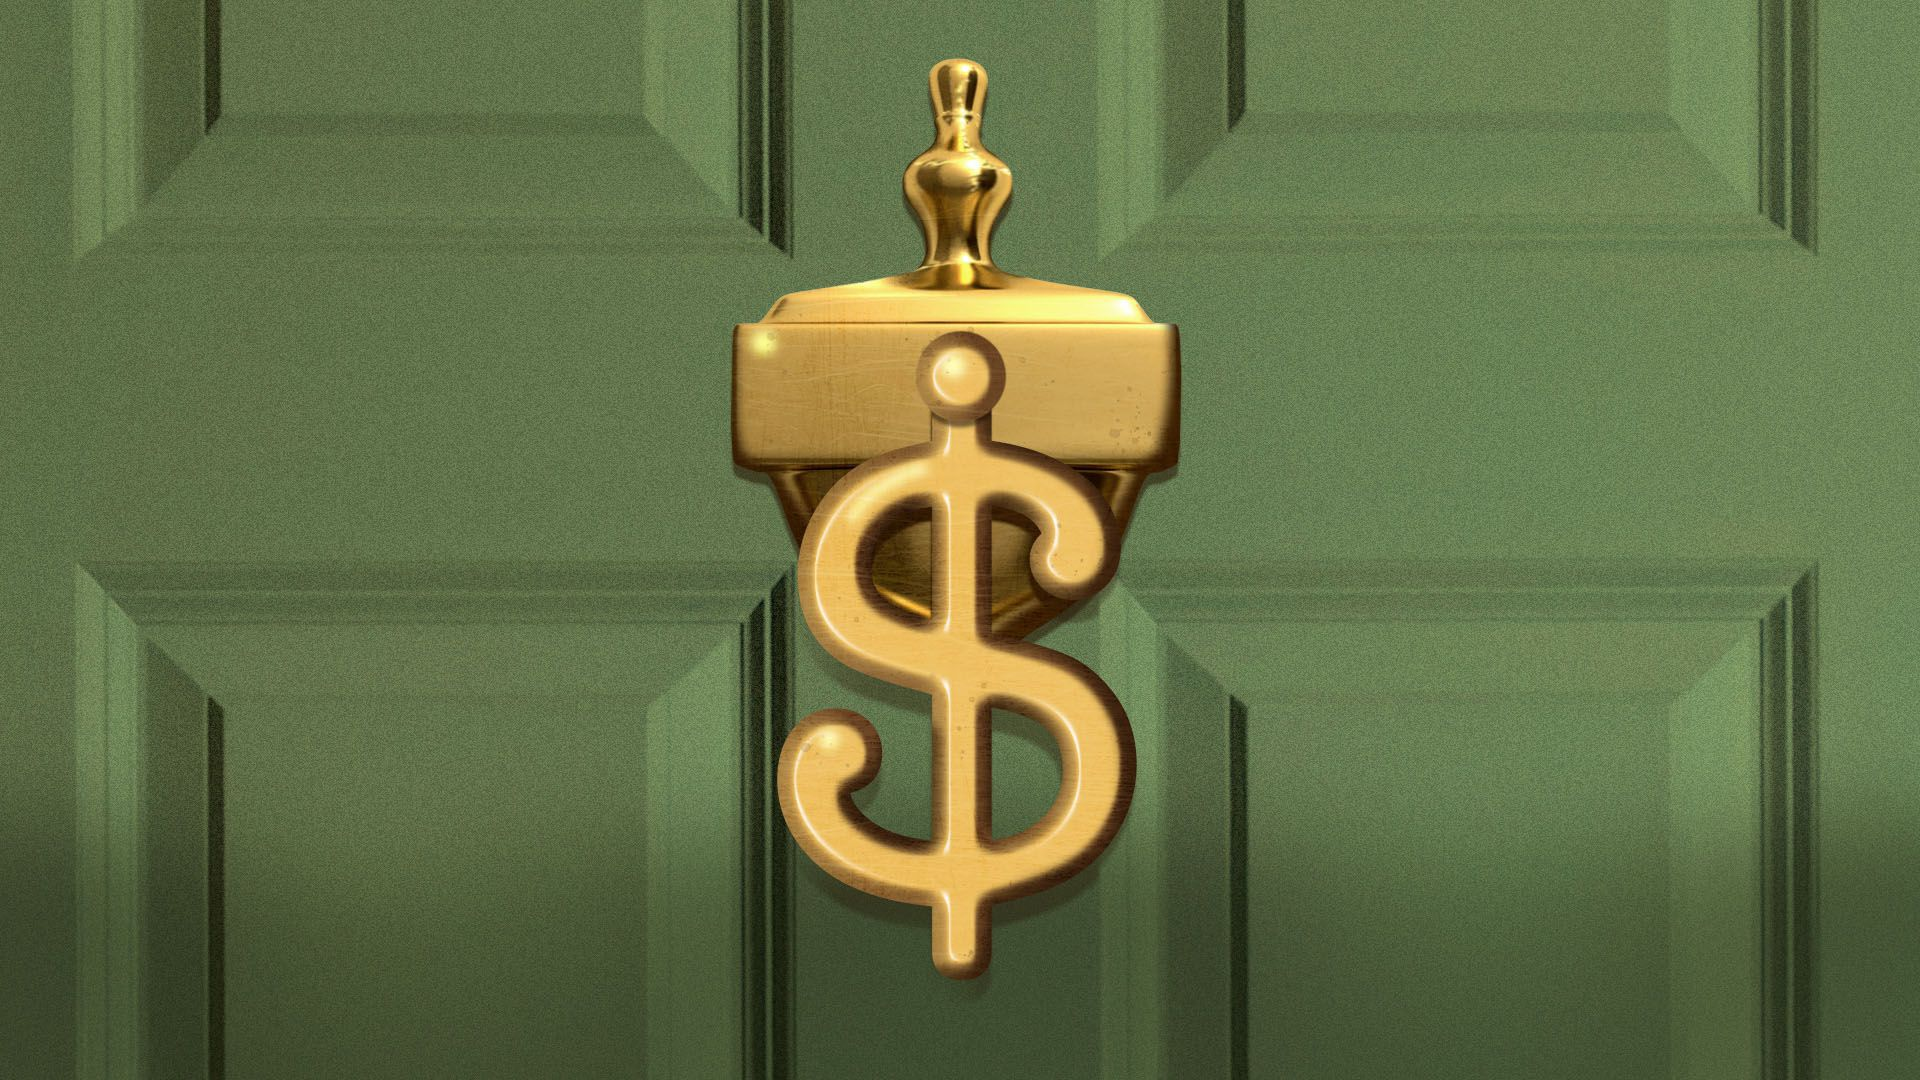 Illustration of a door knocker in the shape of a dollar sign